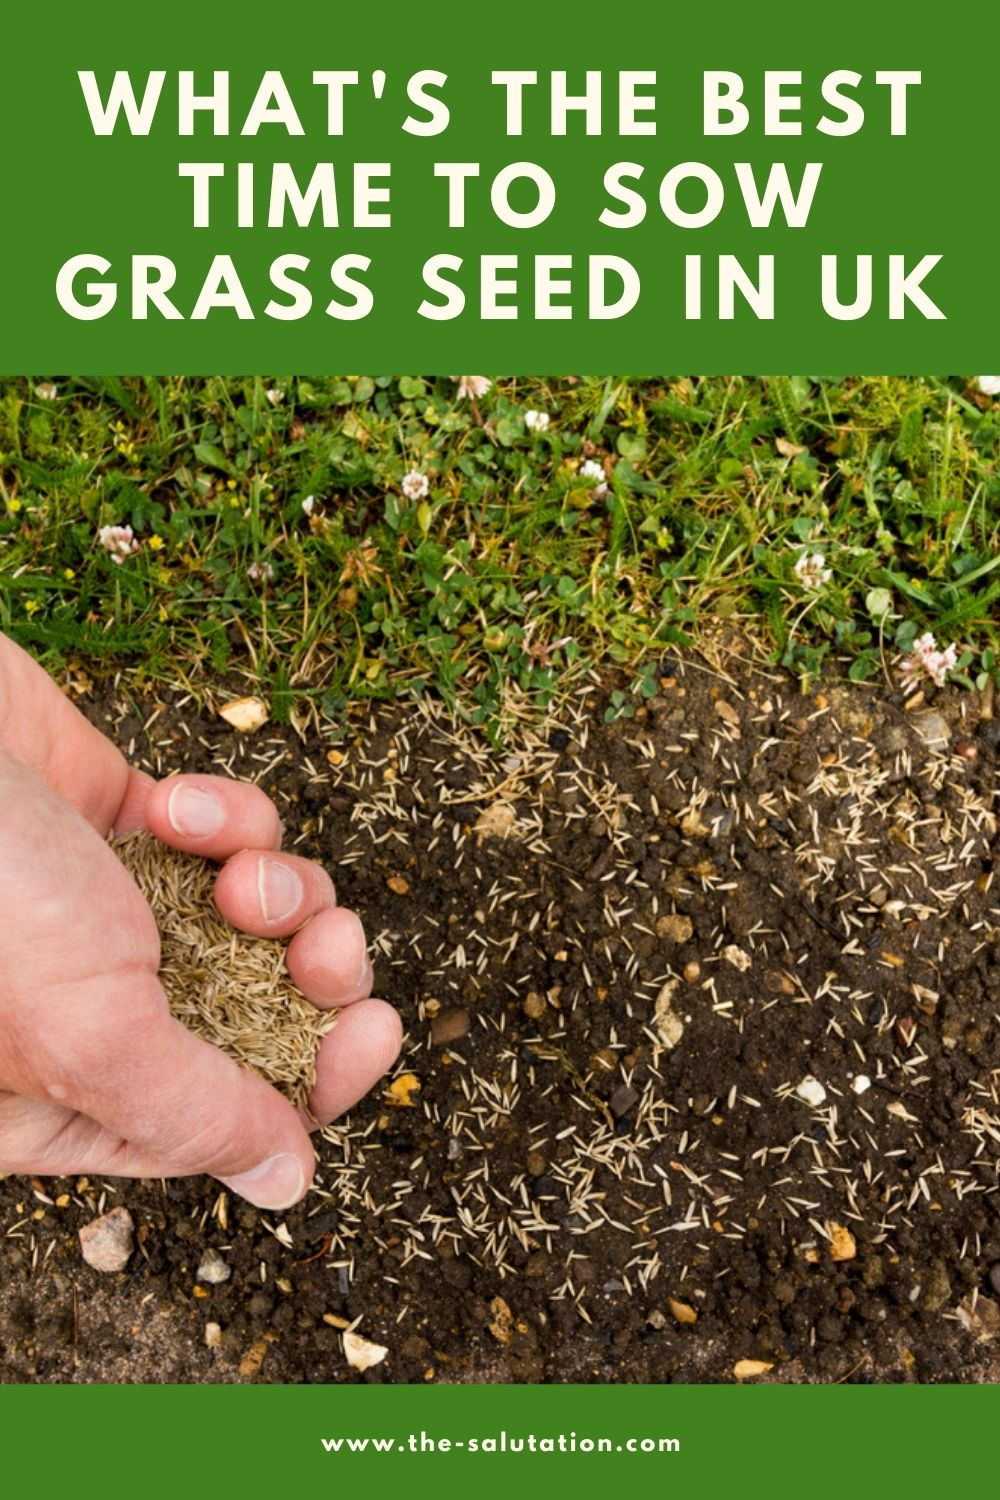 What's the Best Time to Sow Grass Seed in UK 2